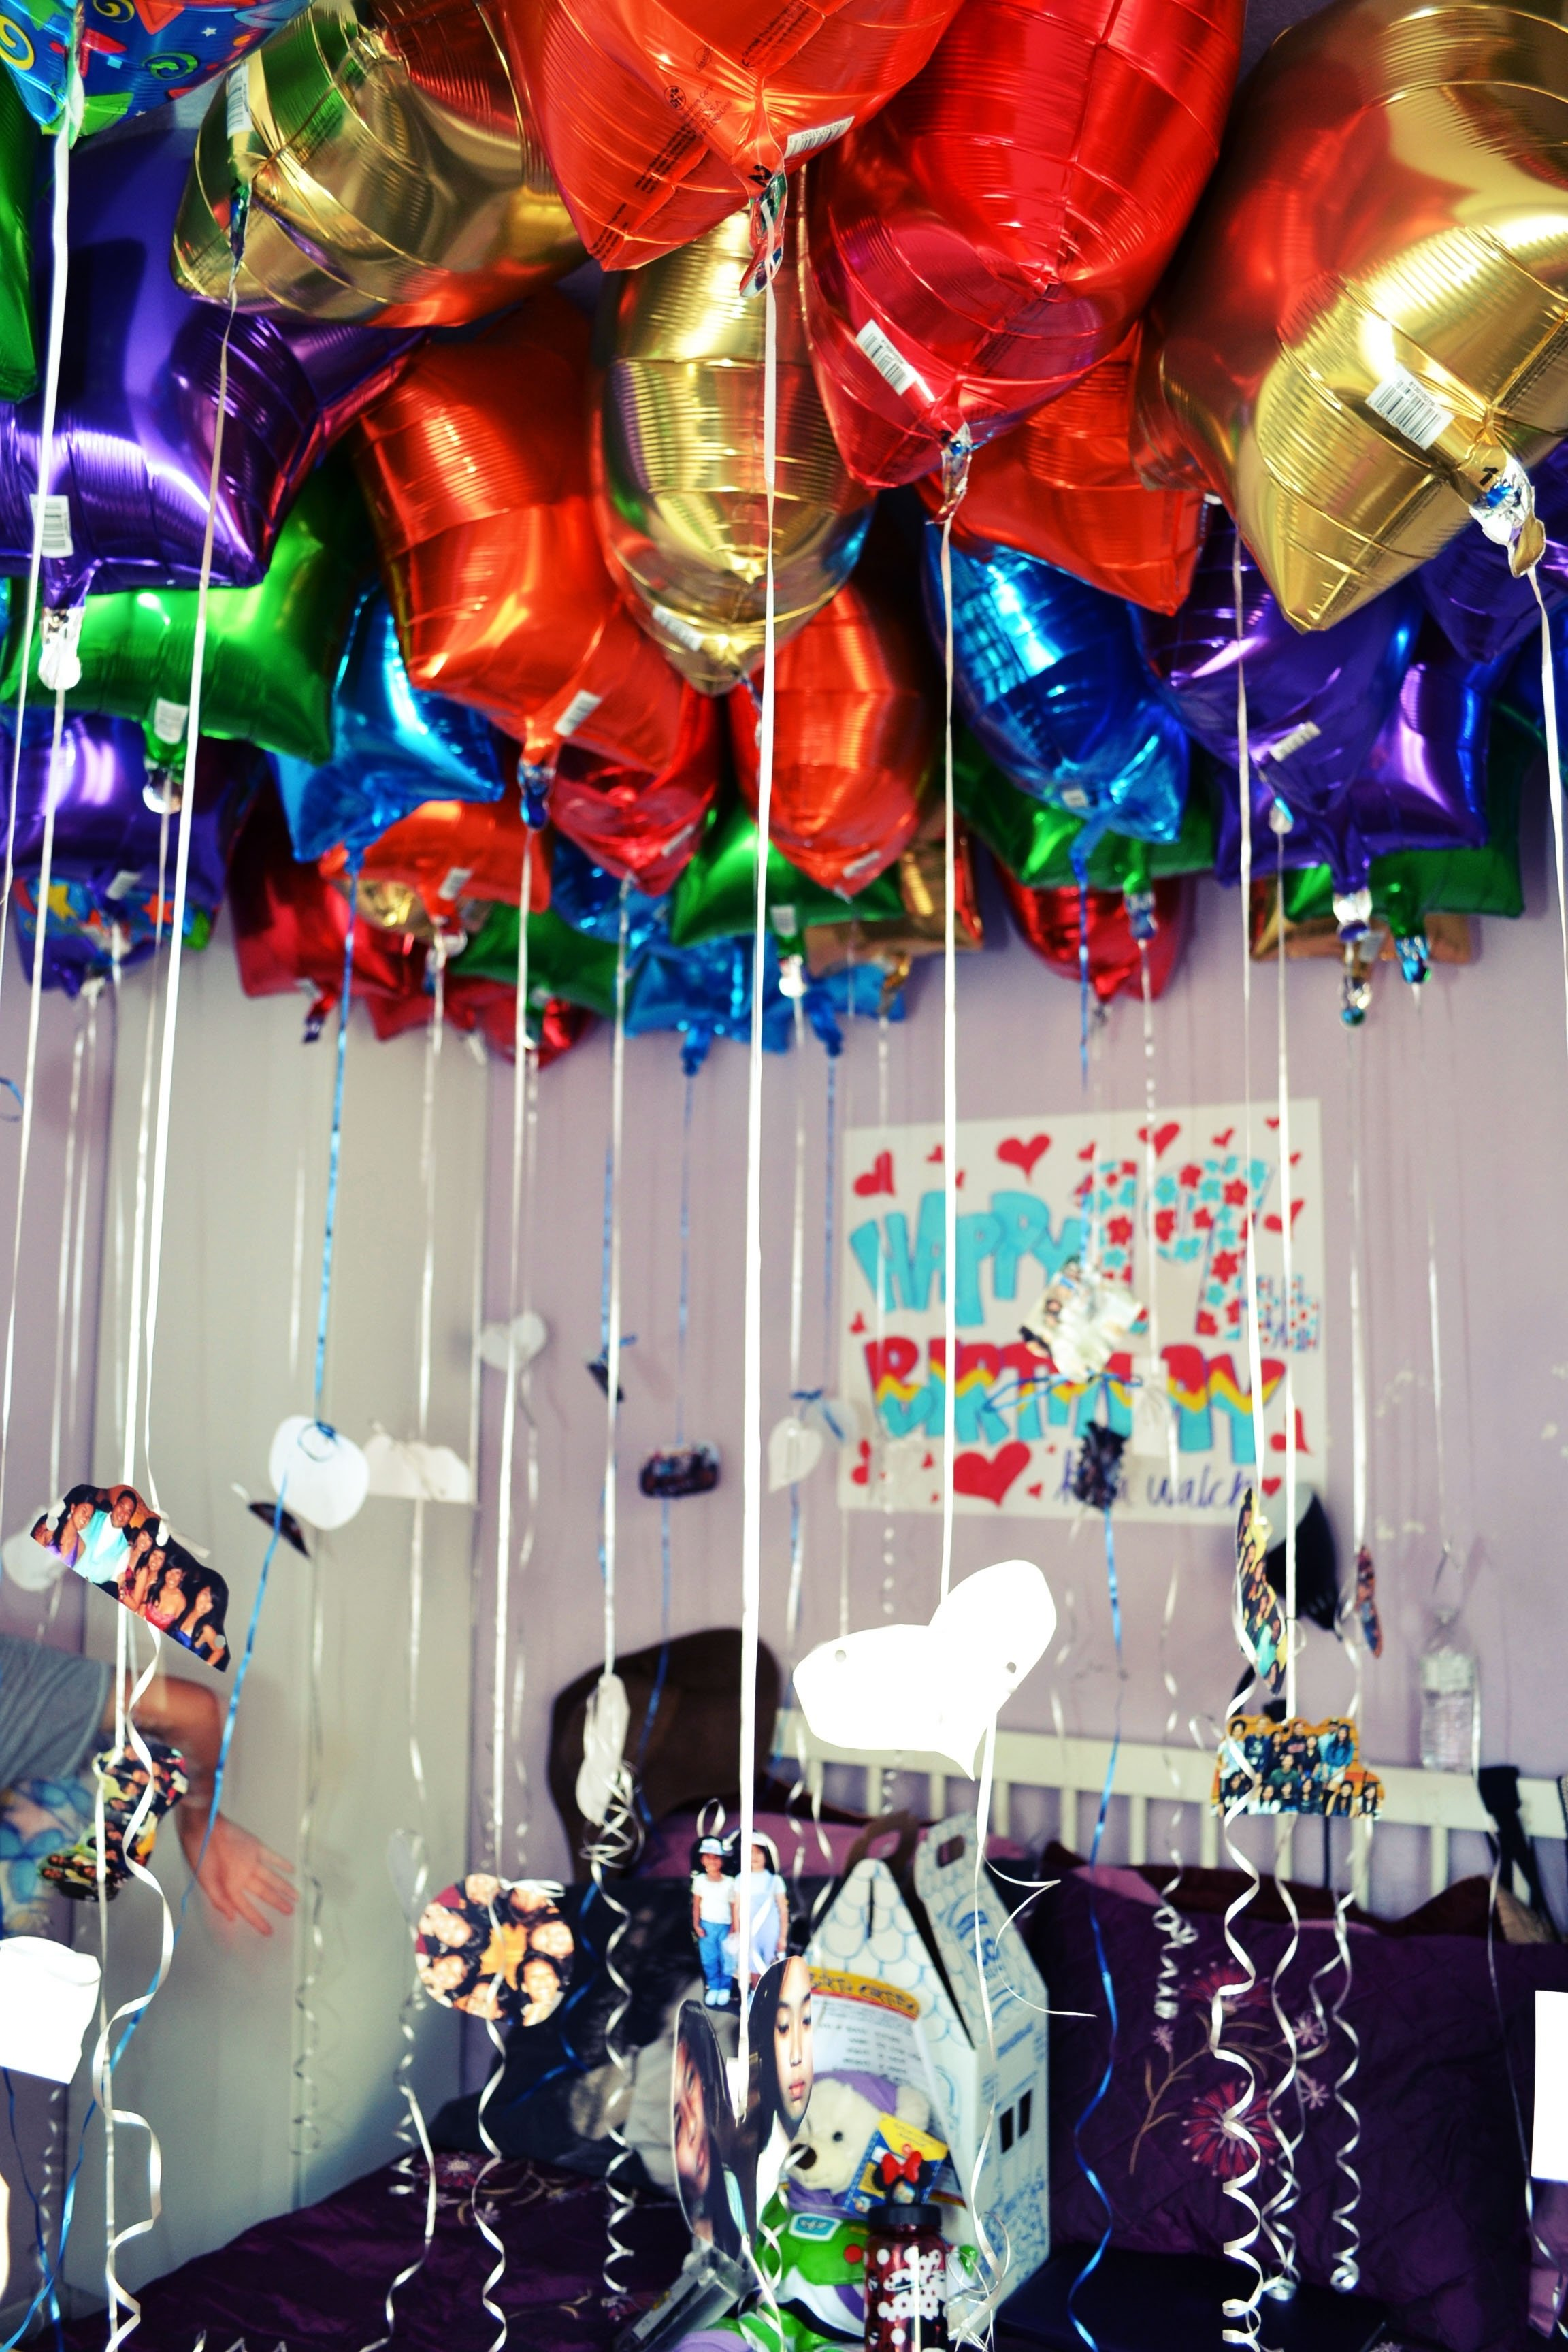 10 Spectacular Ideas For A Surprise Birthday Party im doing this next week when i see tyler for his graduation i hope 2020